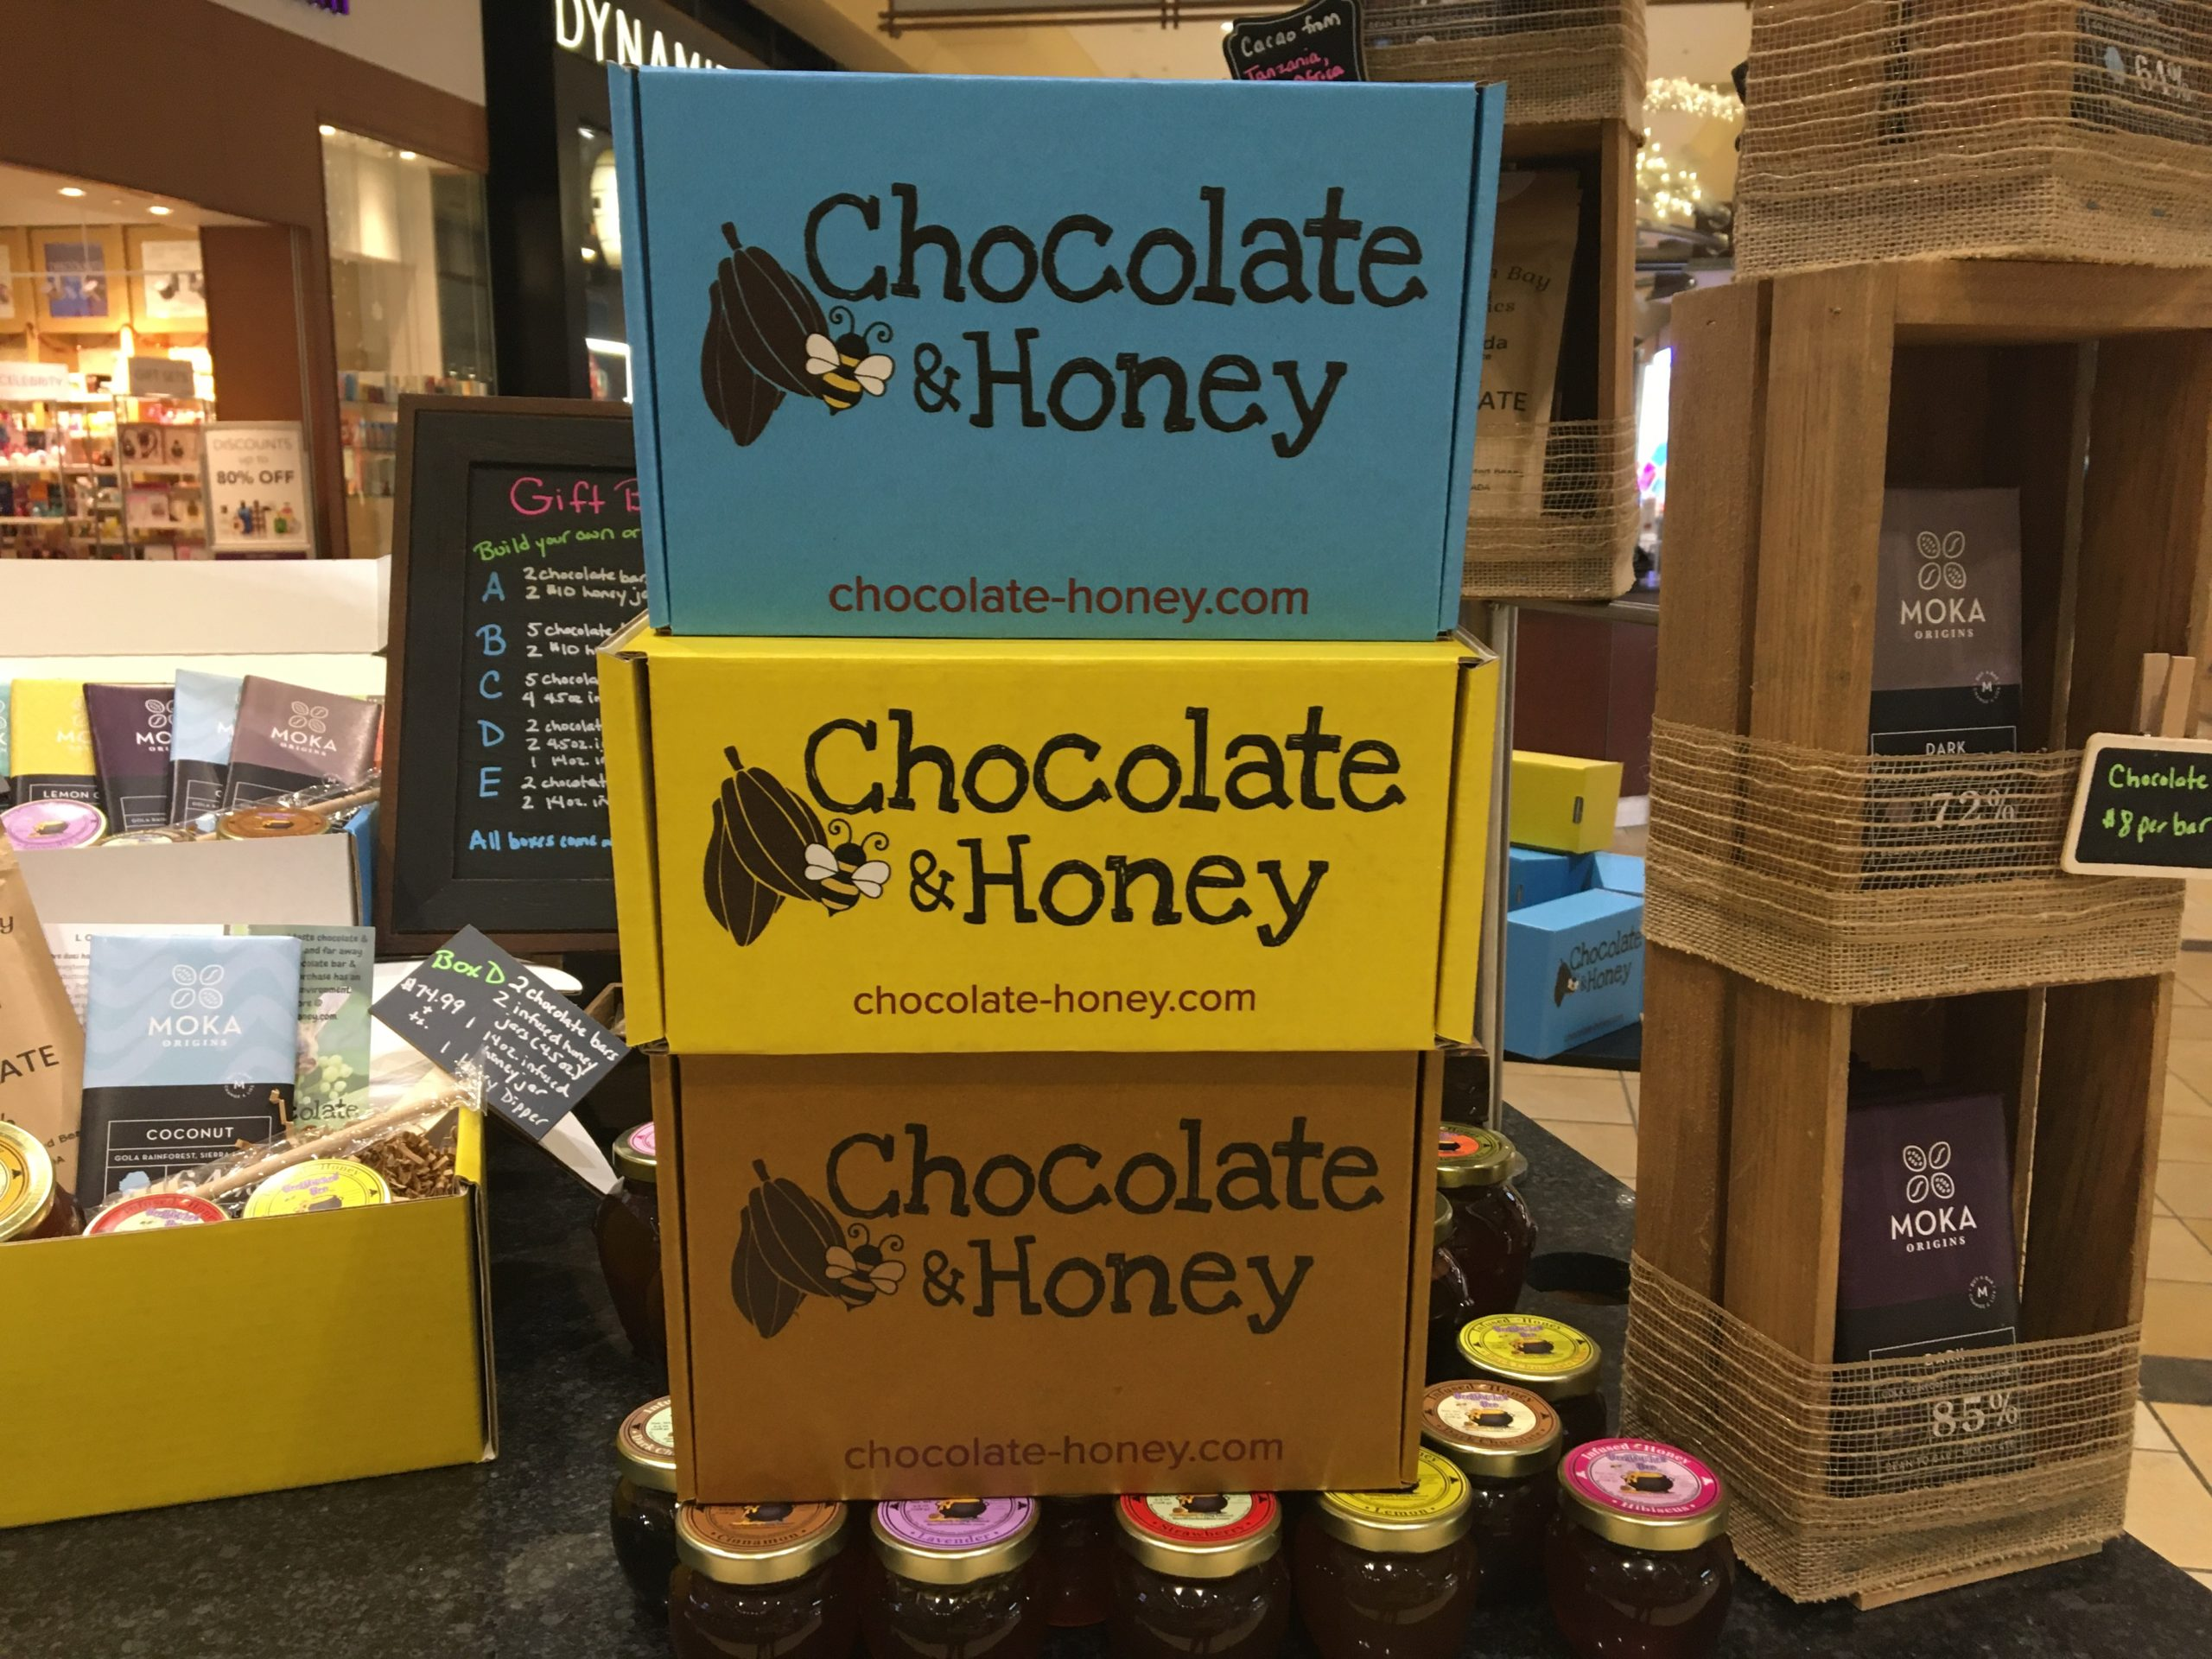 chocolate and honey gift boxes